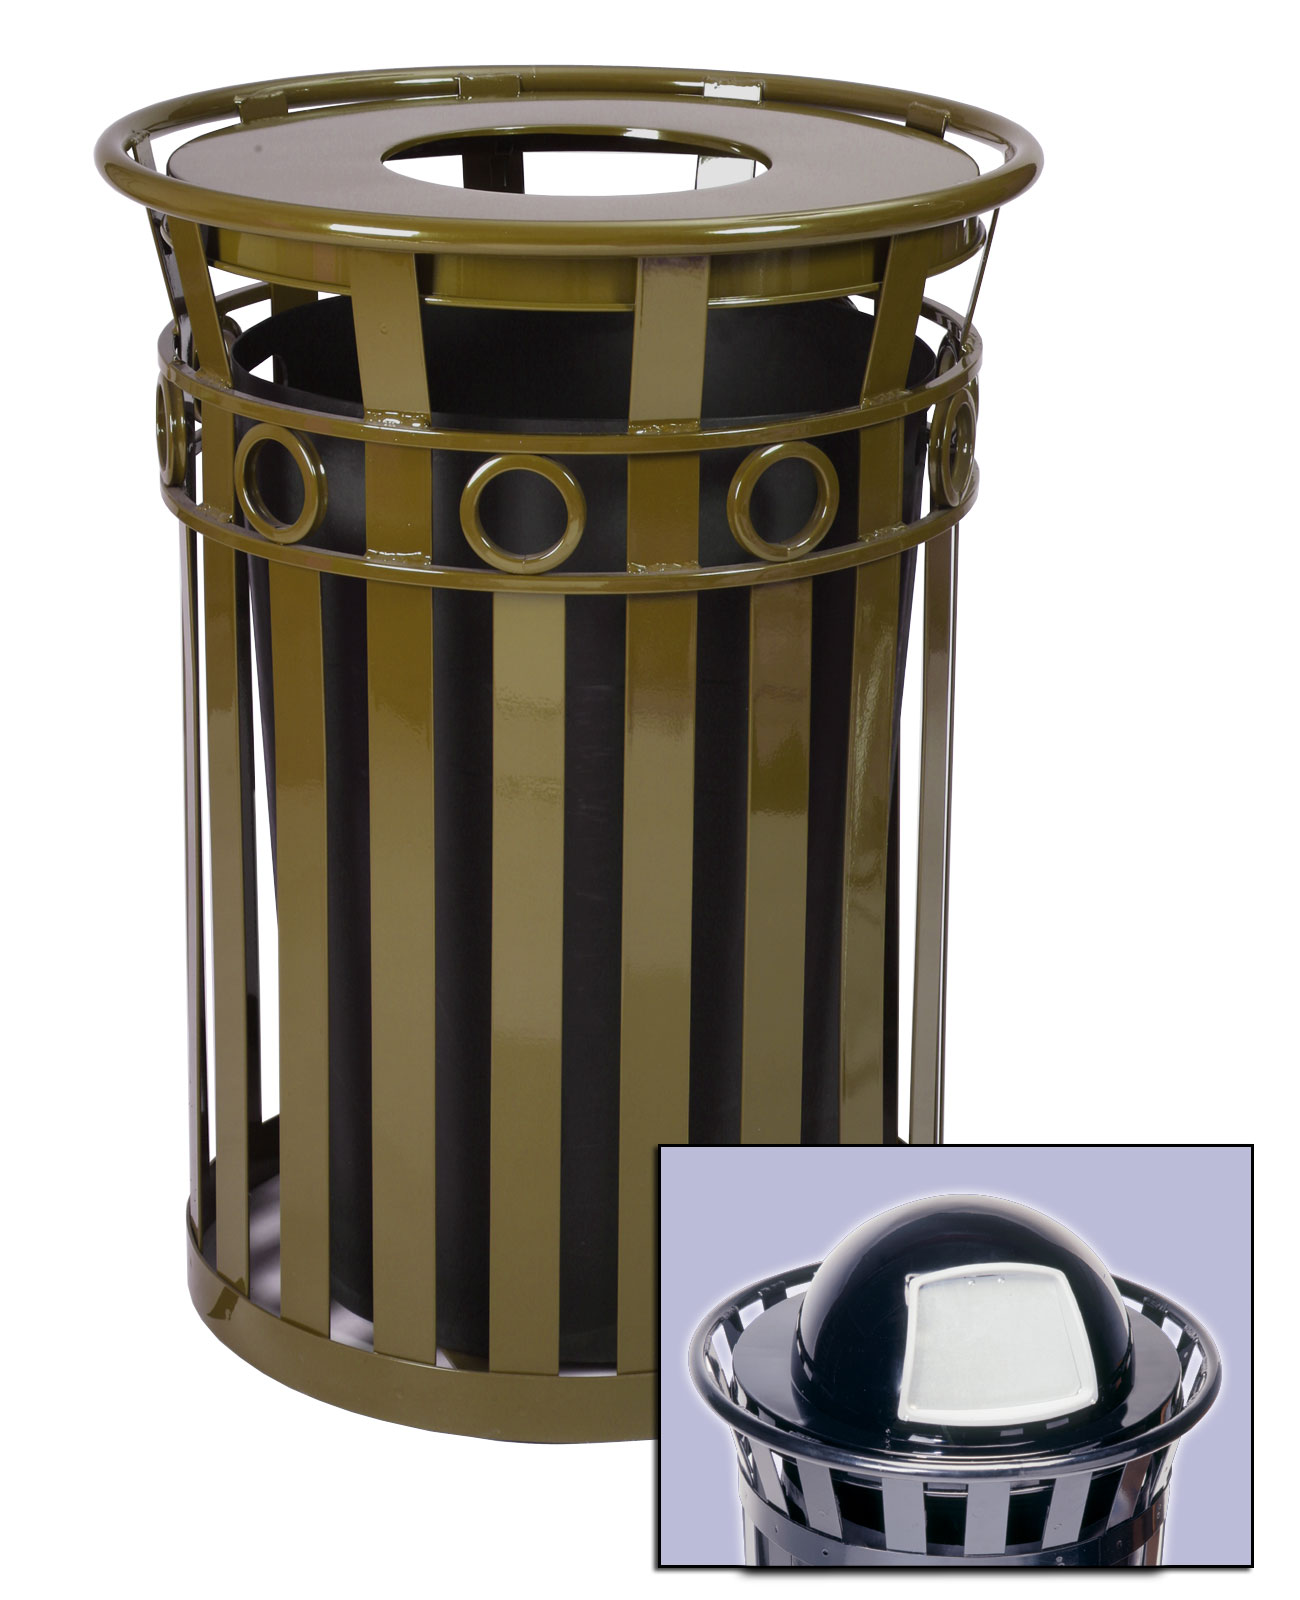 40 gallon oakley decorative outdoor steel trash cans trash cans warehouse. Black Bedroom Furniture Sets. Home Design Ideas